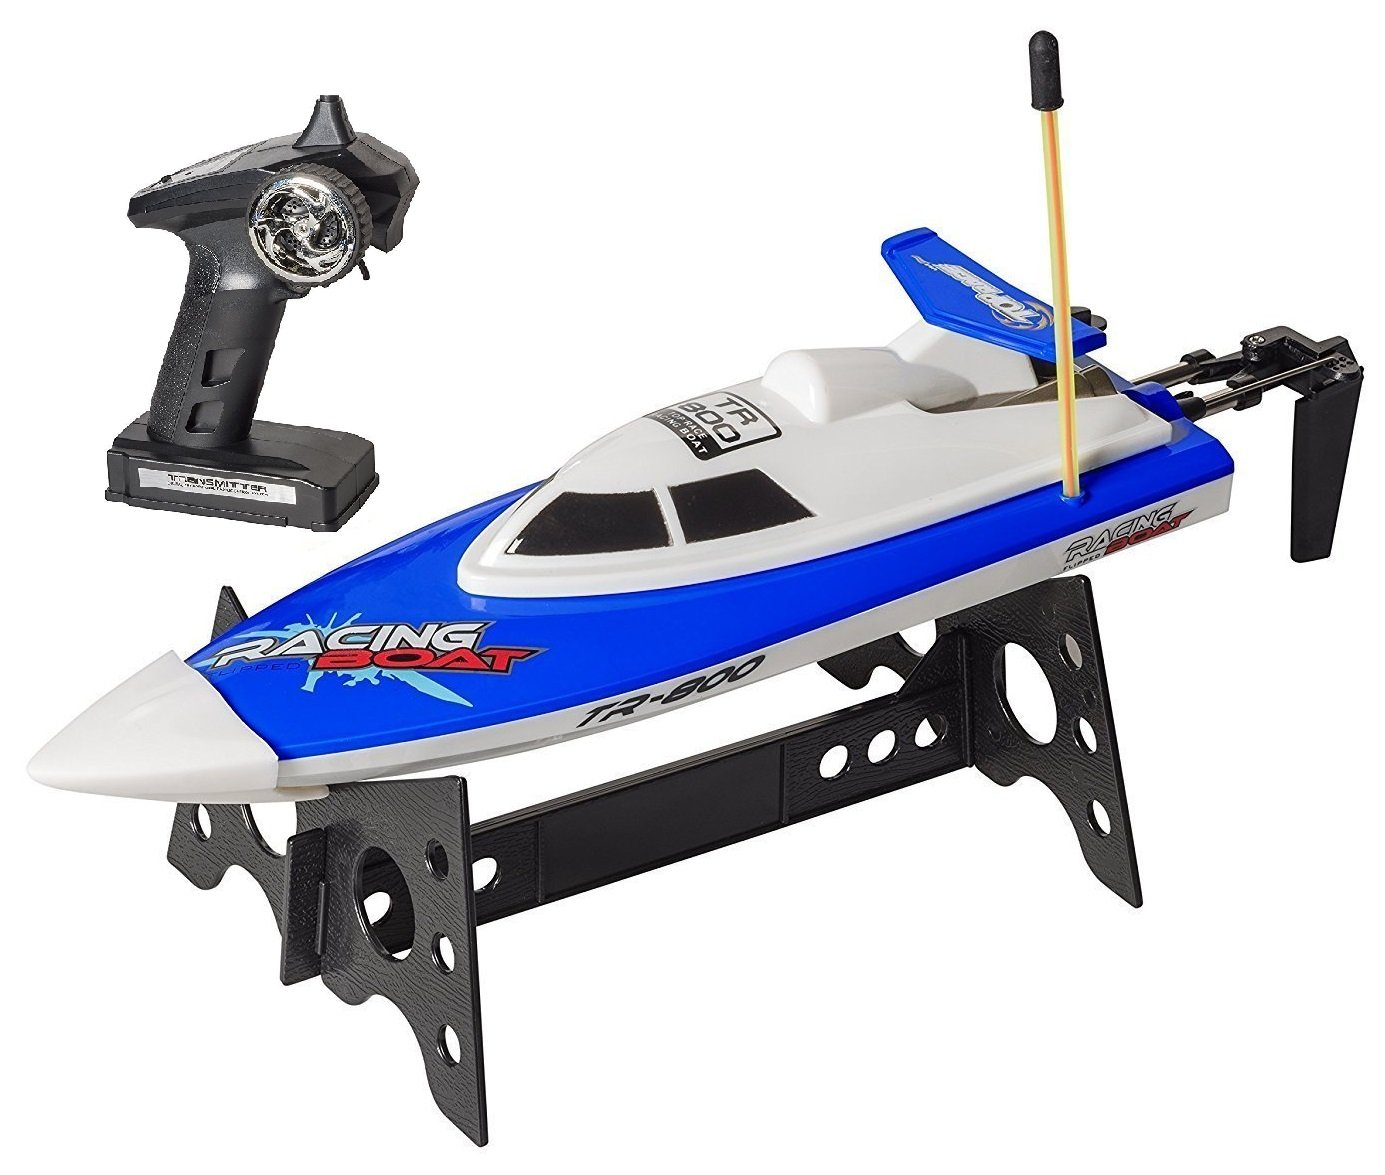 The Best RC Boat 4